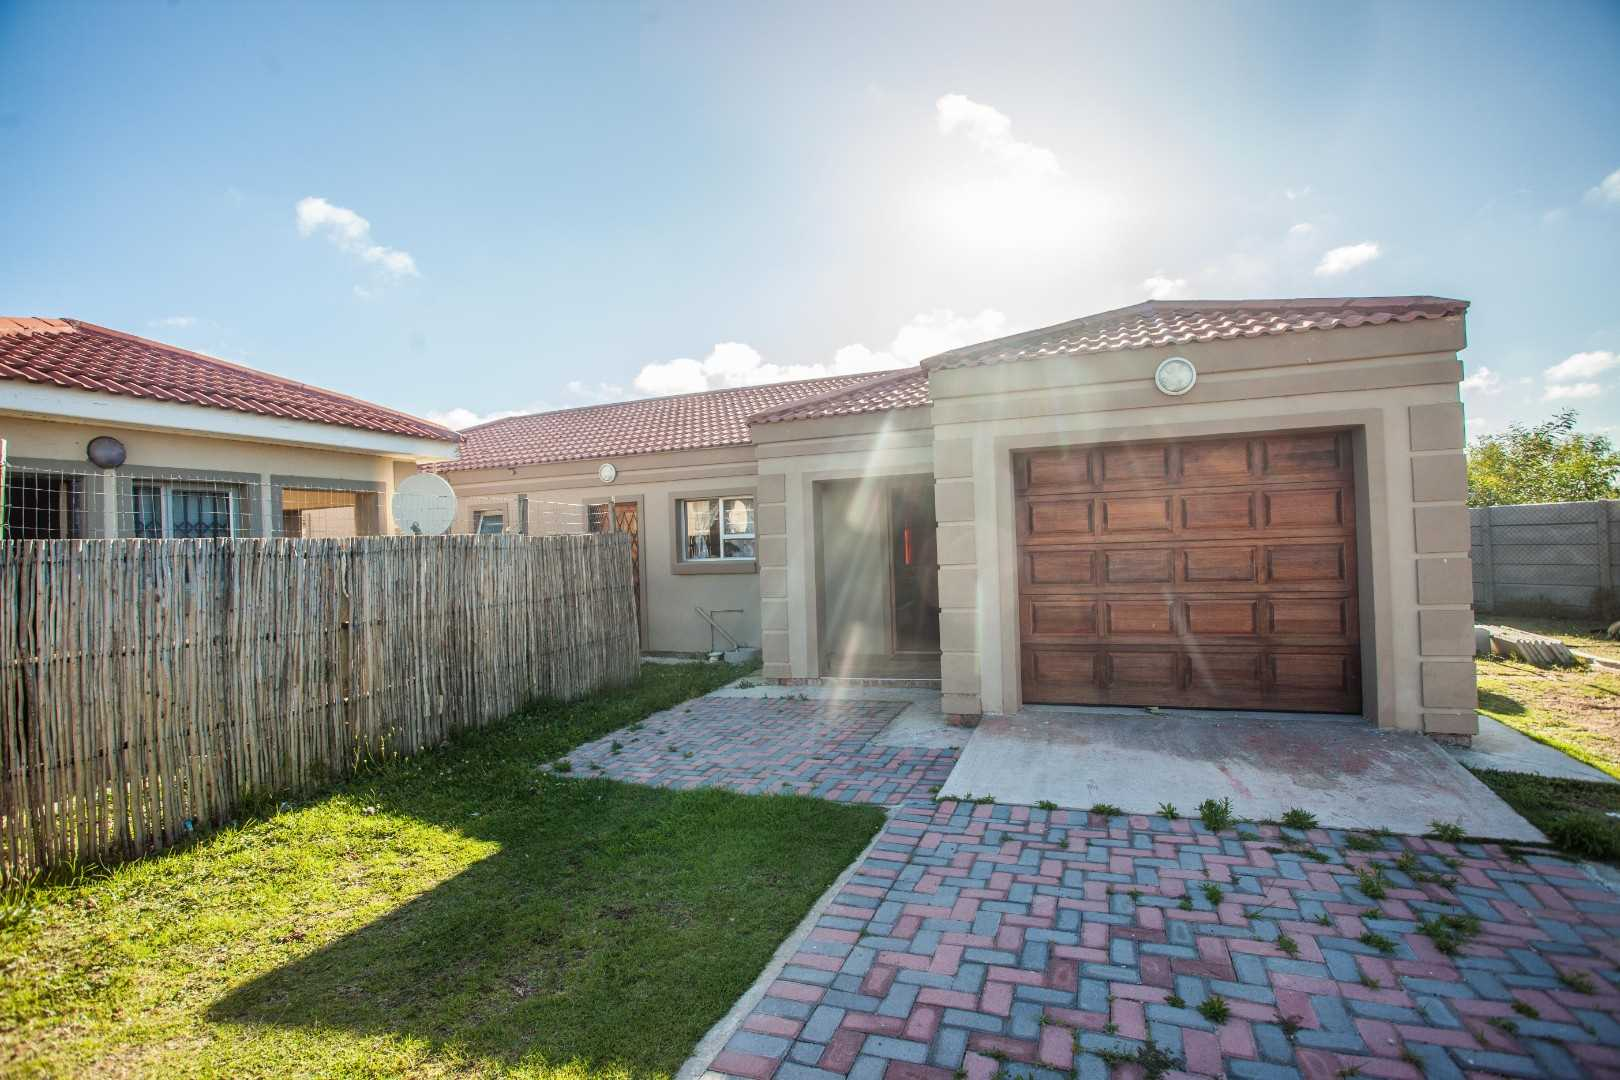 Two houses for sale on a large plot in Parsonsvlei